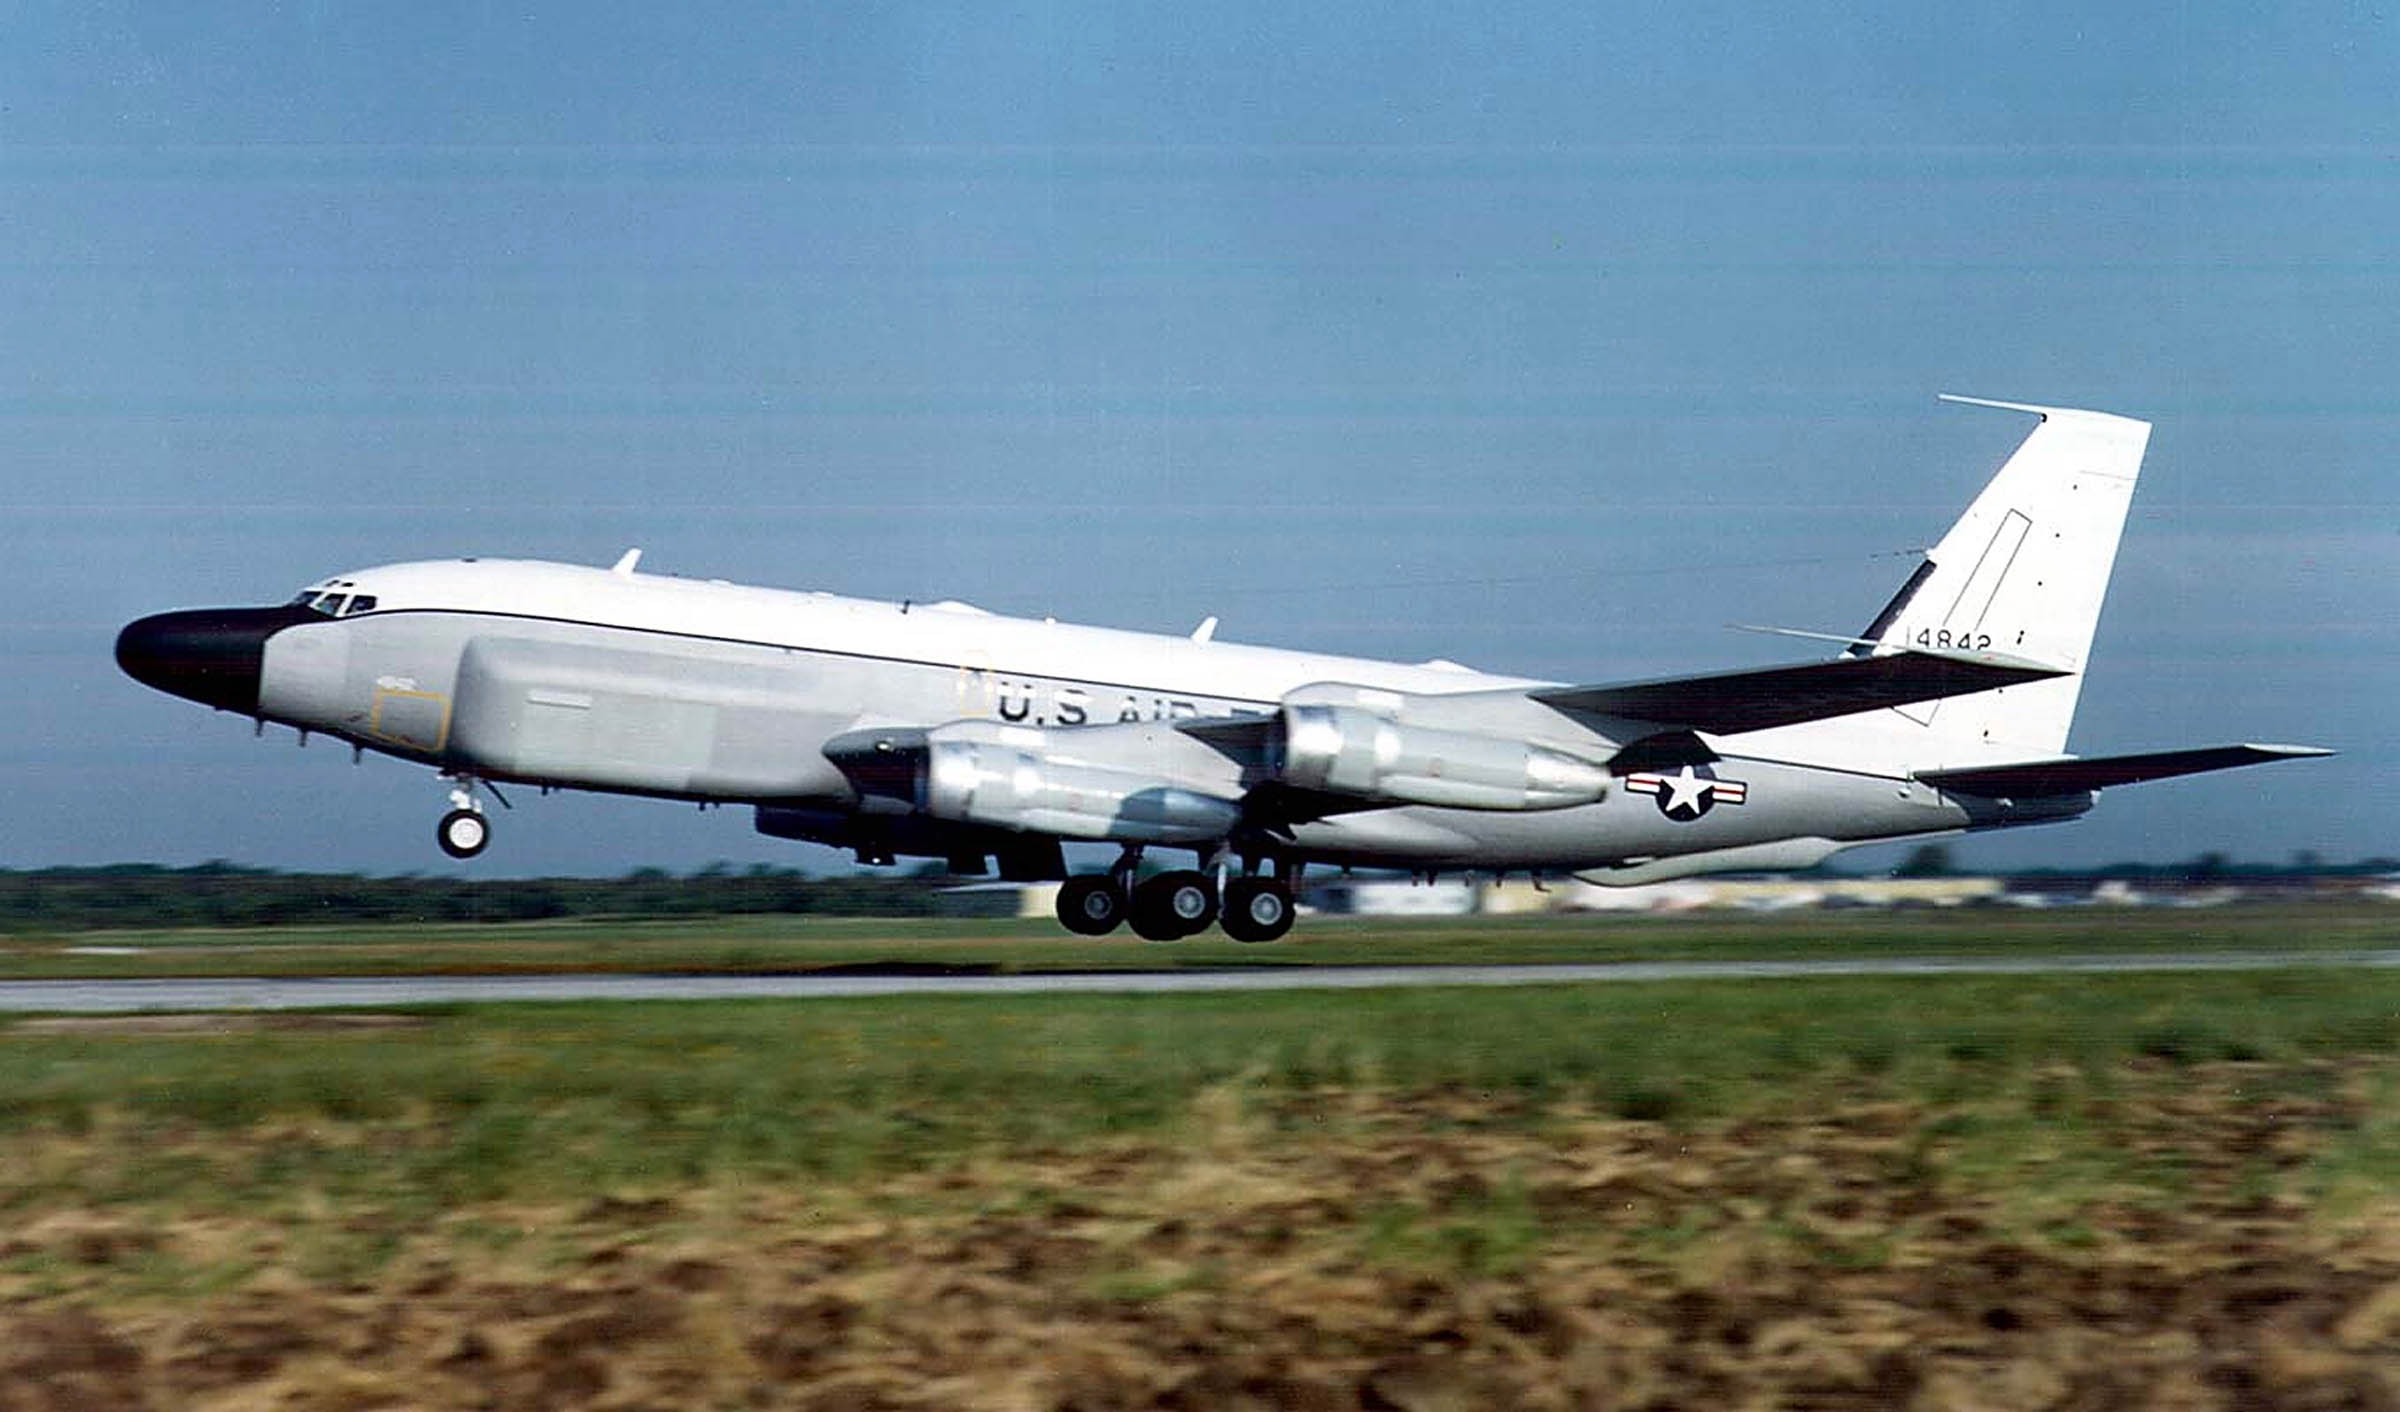 A U.S. Air Force RC-135 reconnaissance aircraft lifts off in this undated file photo. A similar jet flew a surveillance mission off the coast of China, May 7, 2001 as the United States resumed reconnaissance flights in the region for the first time since the April 1, 2001 collision of a U.S. Navy plane and a Chinese fighter jet.